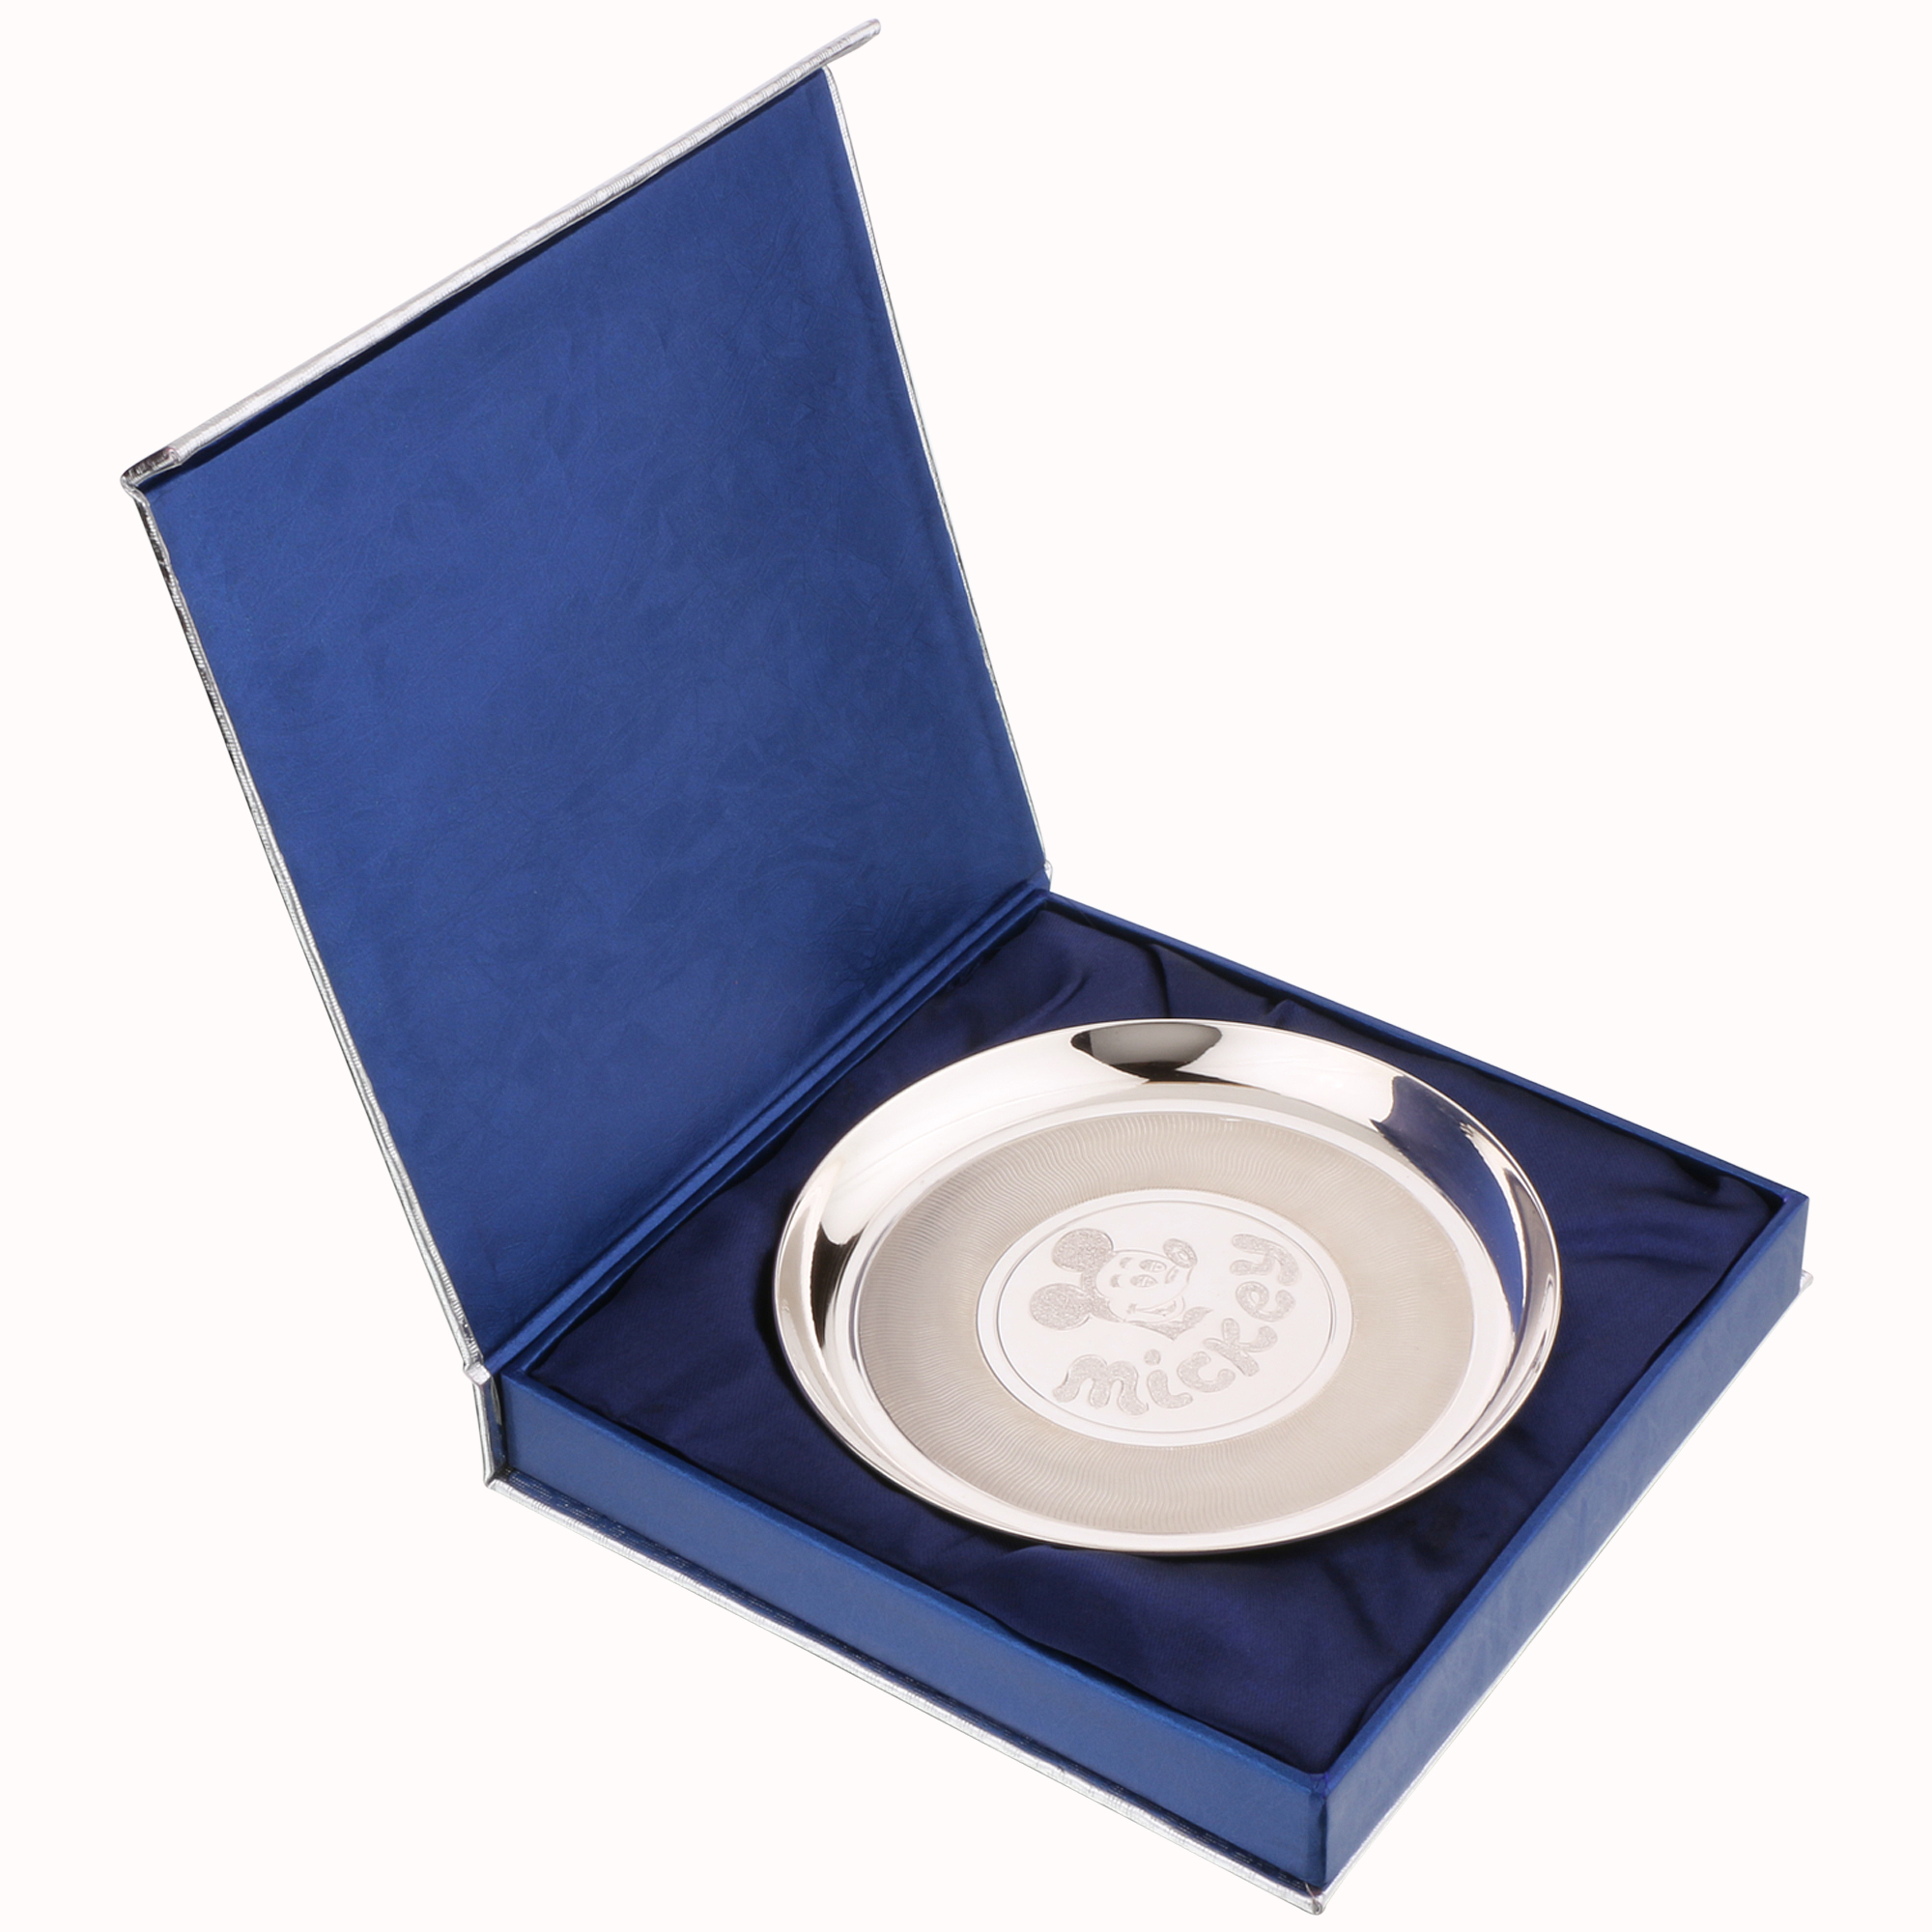 Osasbazaar Sterling Silver Baby Plate - Mickey Mouse Design - Packaging